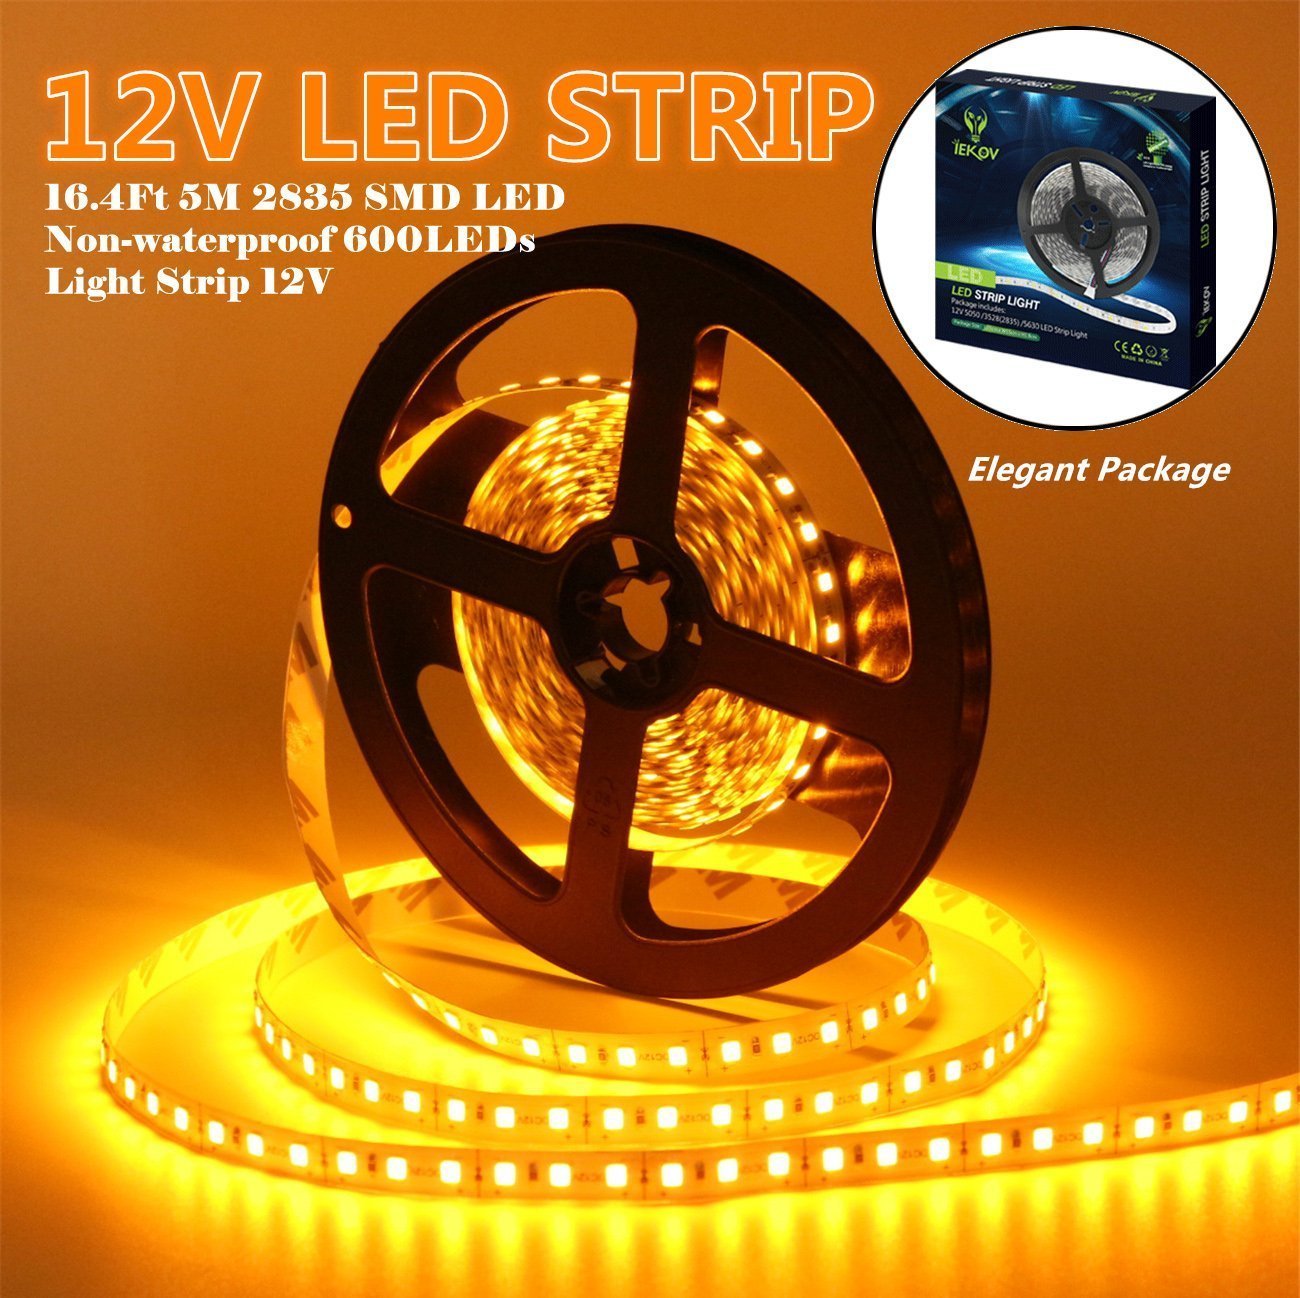 Led Strip Lights, IEKOV™ 2835 SMD 600LEDs Non-Waterproof Flexible Xmas Decorative Lighting Strips, LED Tape, 5M 16.4Ft DC12V, 3 times brightness than SMD 3528 LED Light Strip (Yellow)